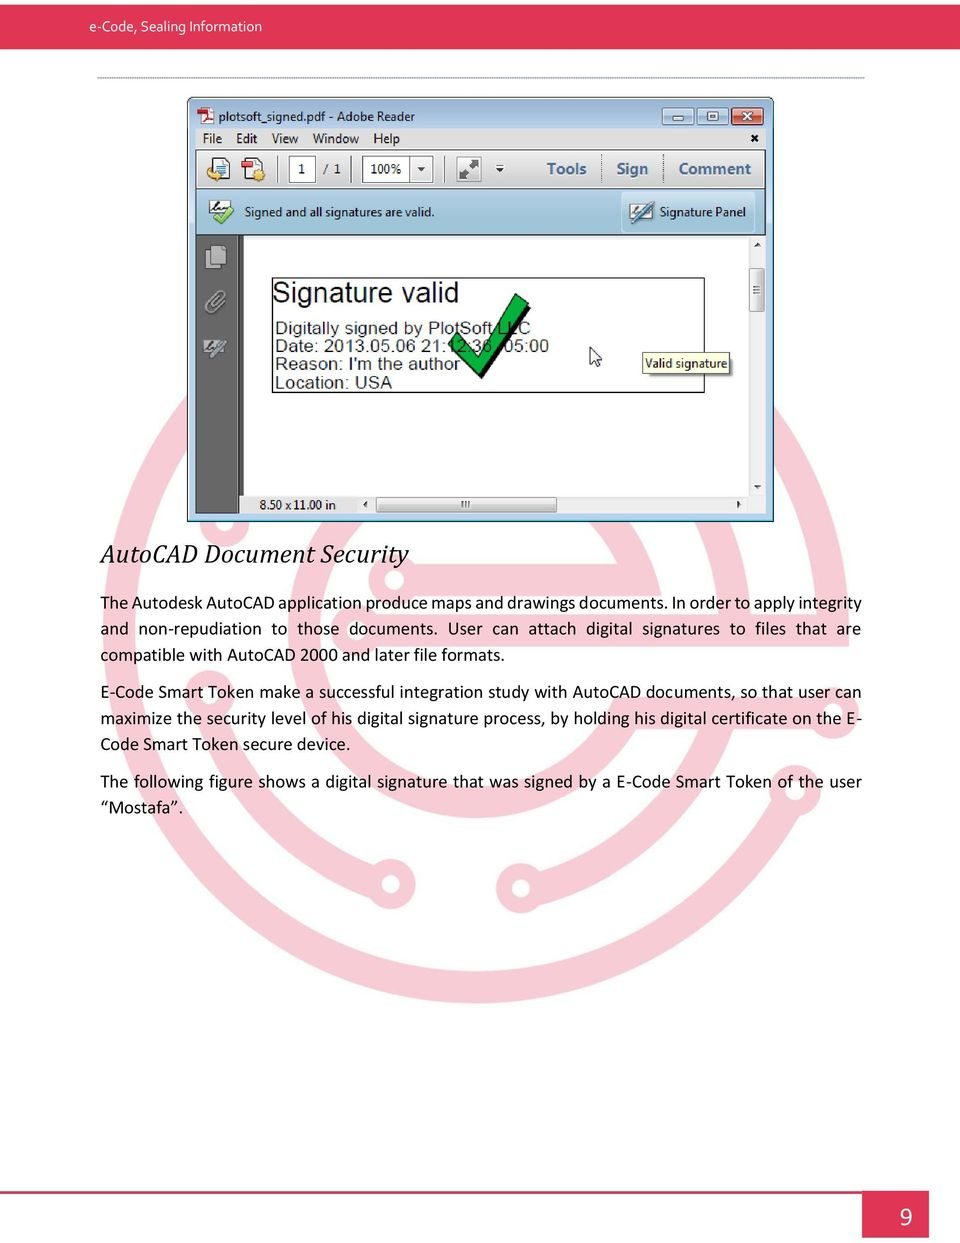 User can attach digital signatures to files that are compatible with AutoCAD 2000 and later file formats.